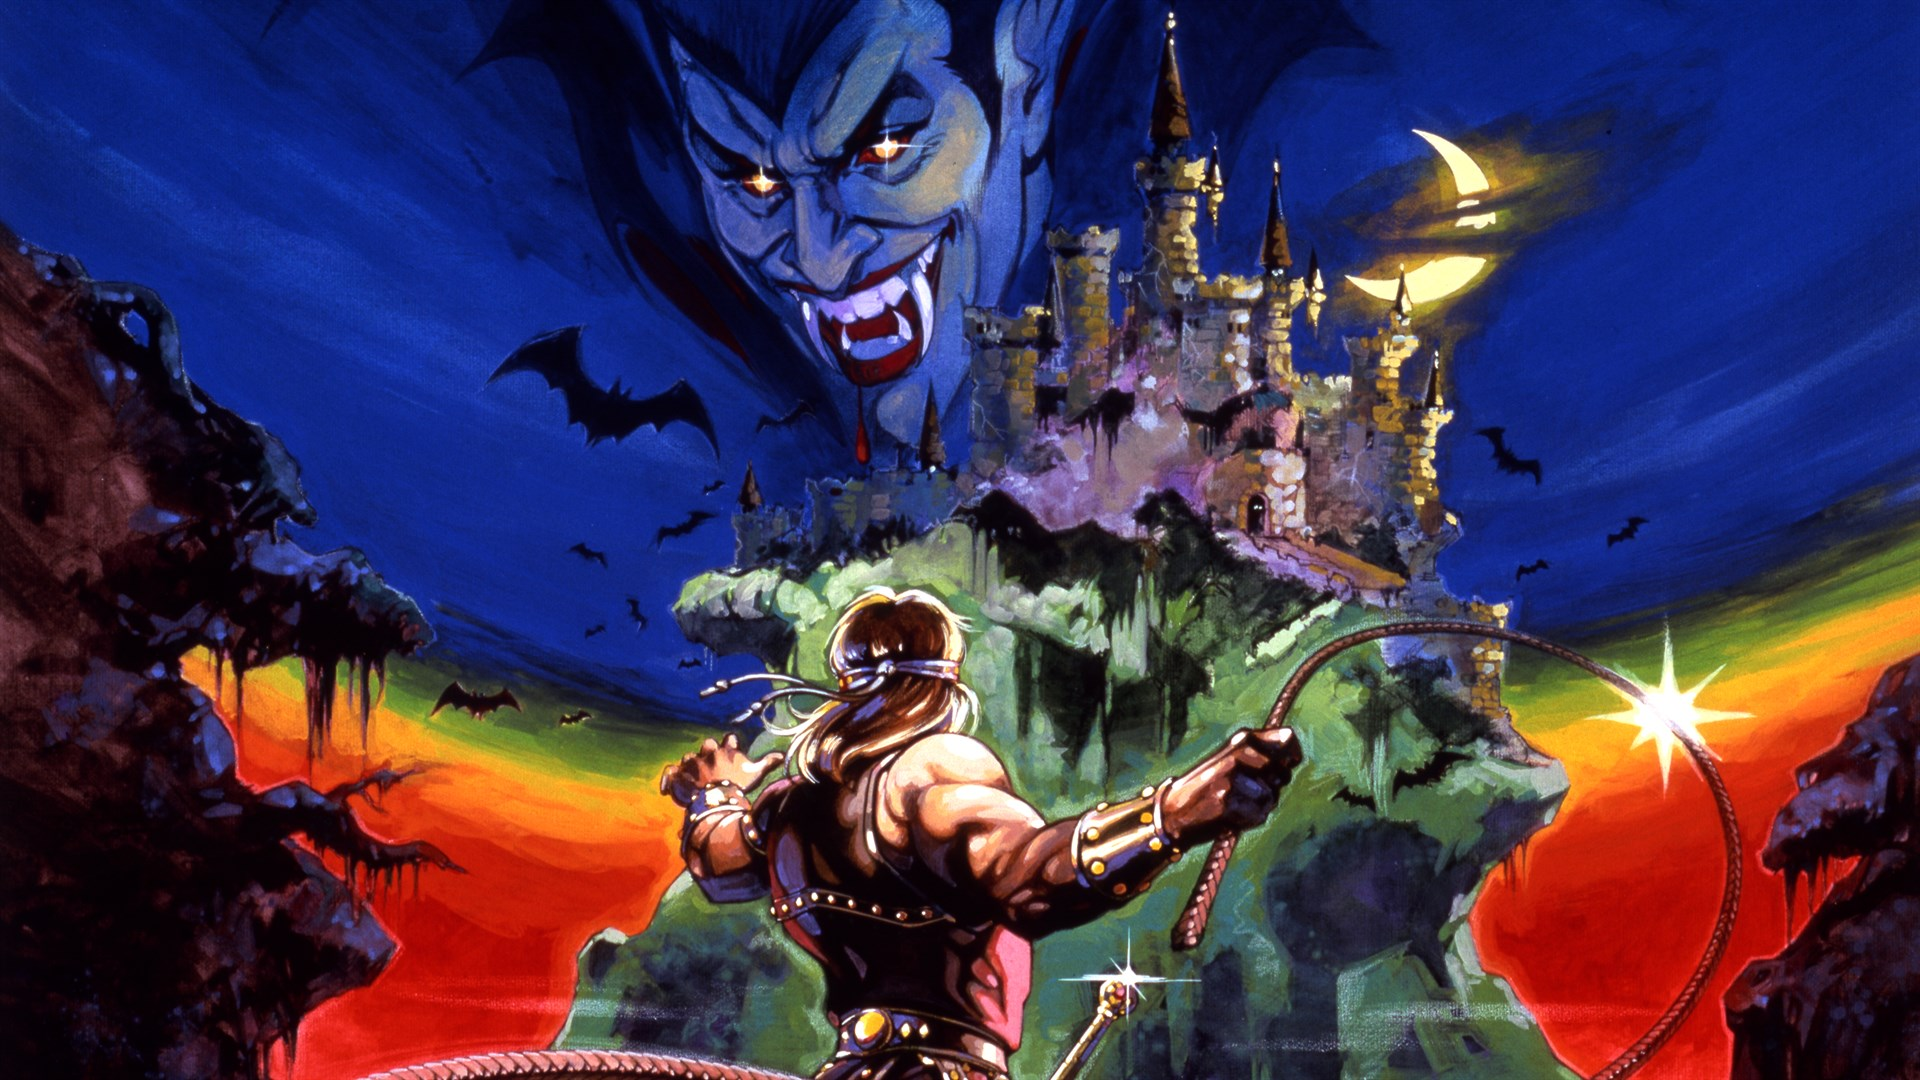 Castlevania Development Collection Rated for Launch in Australia thumbnail